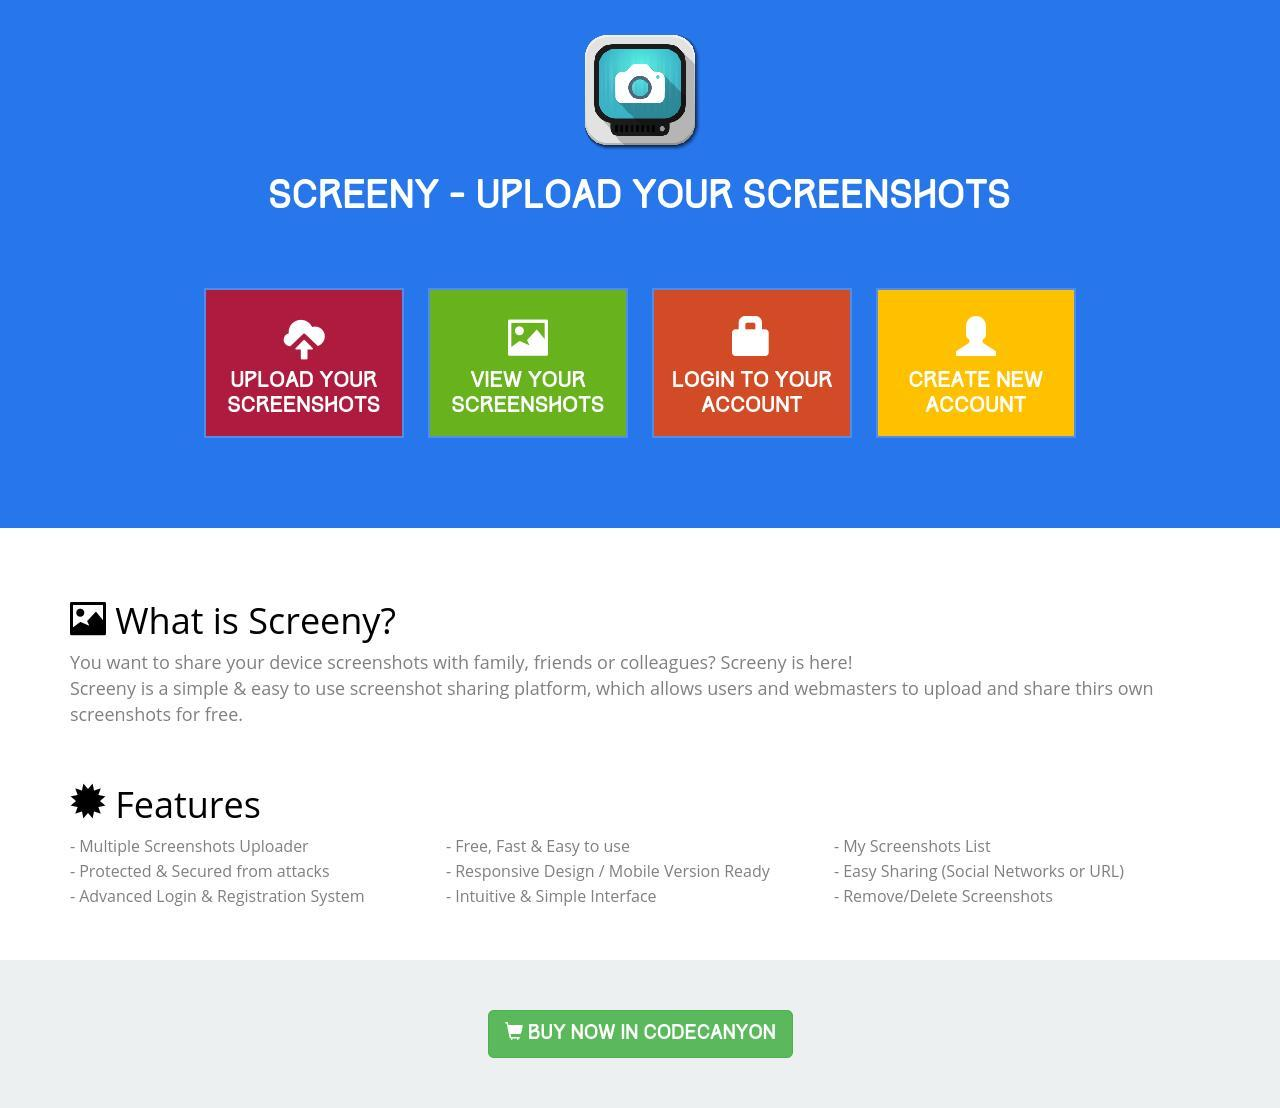 Screeny - Screenshot Sharing Script